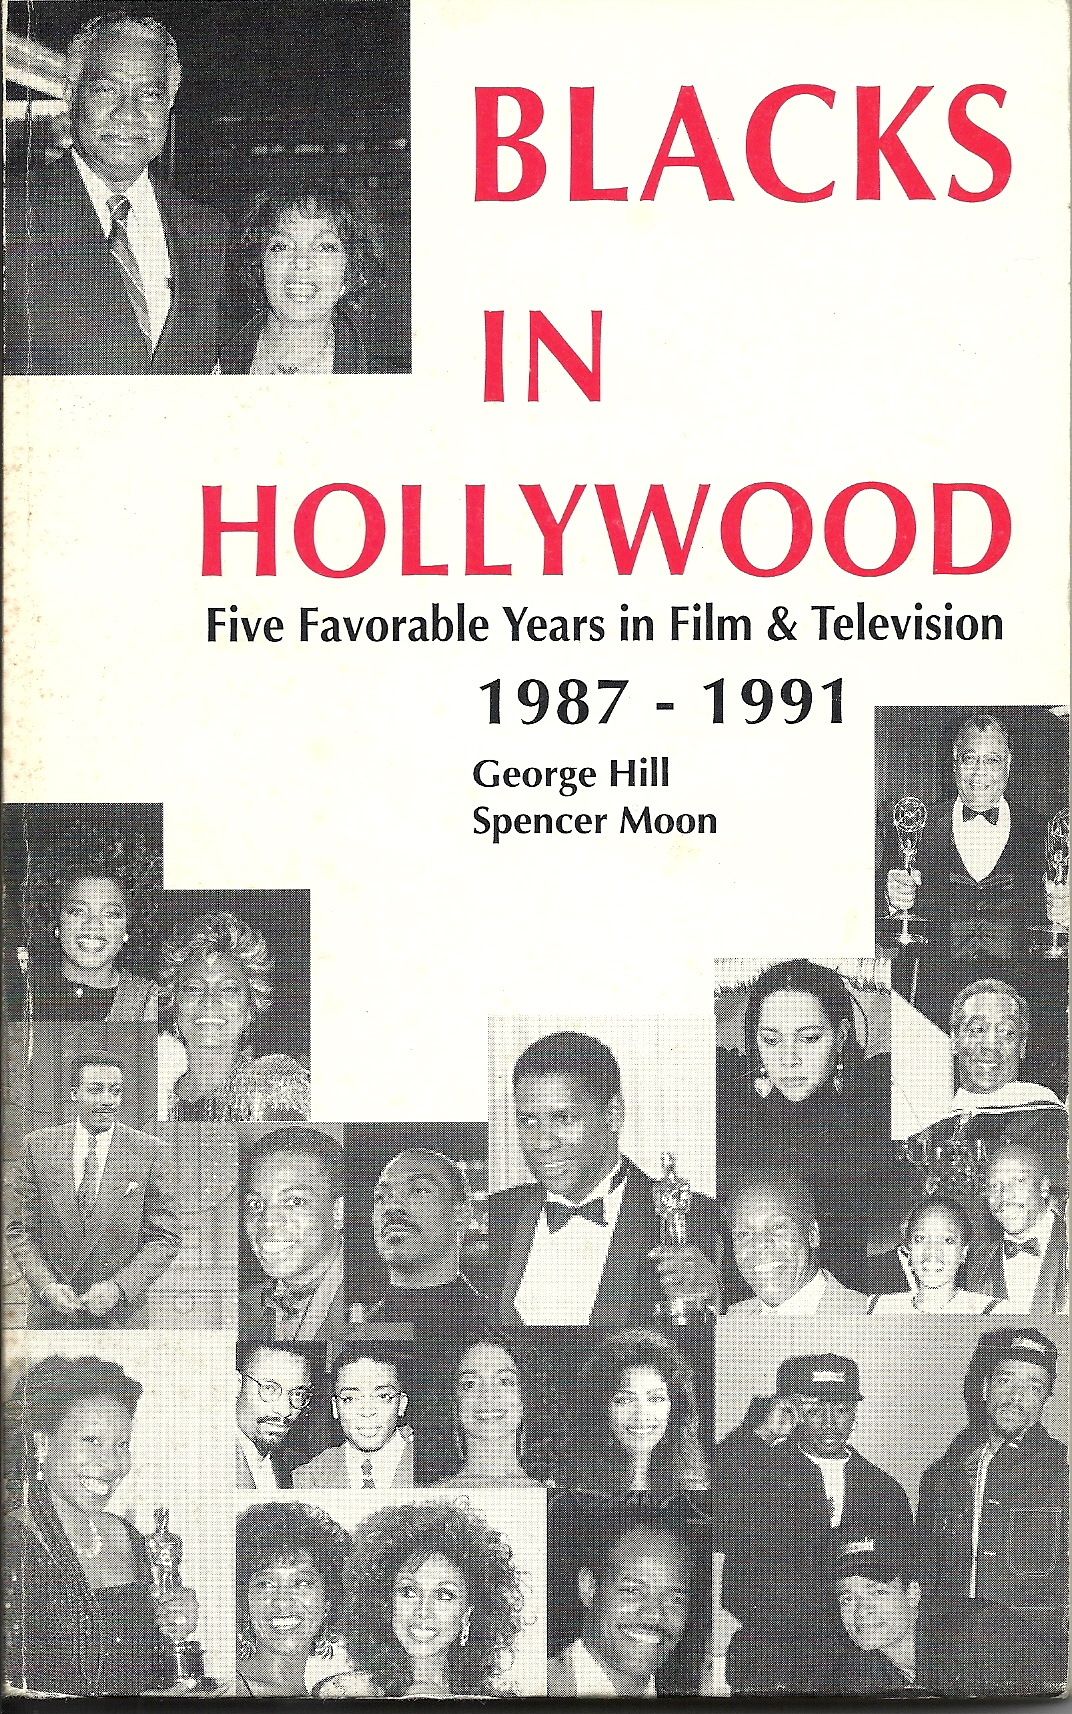 BLACKS IN HOLLYWOOD cover